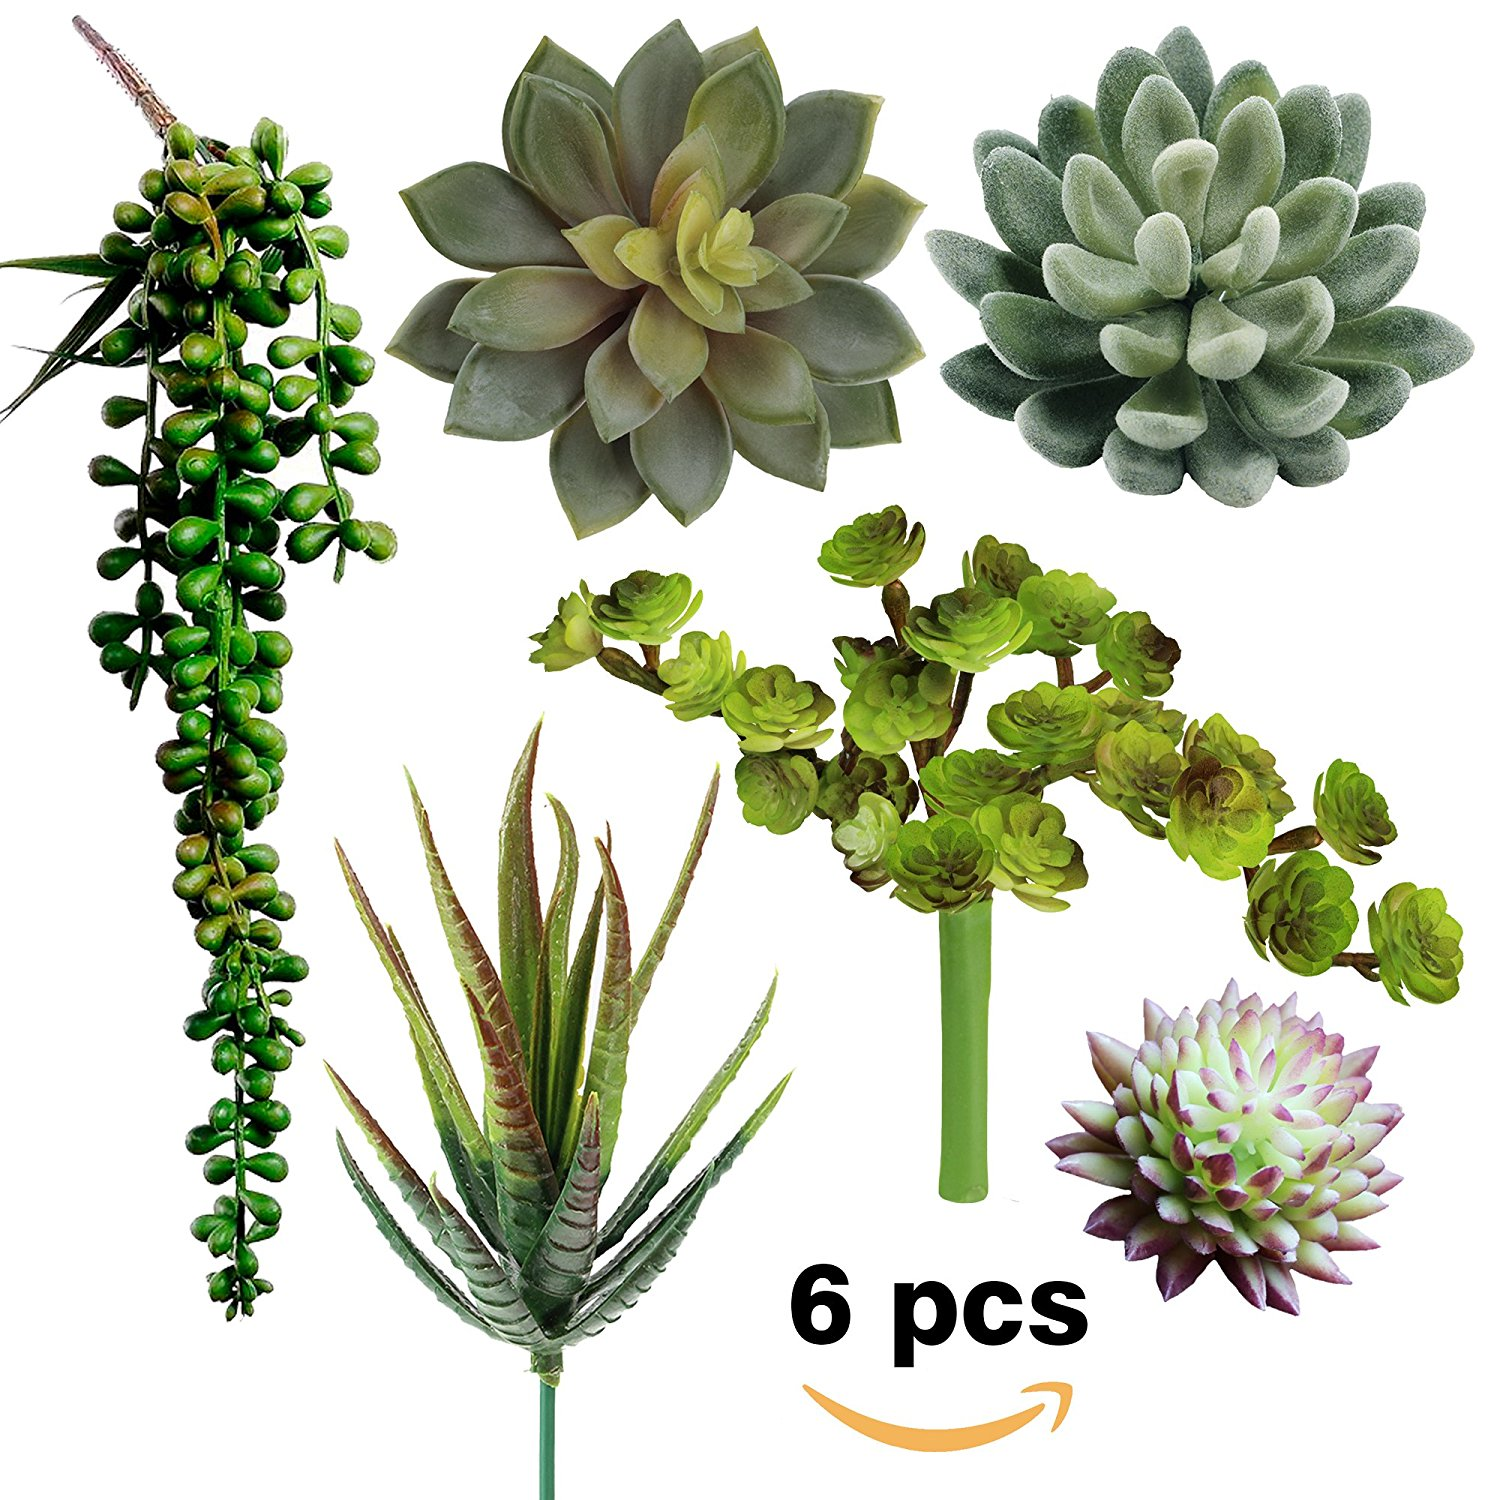 Supla Pack Of 6 Assorted Artificial Succulents Picks Textured Faux Succulent Pick Succulent Stems Fake Succulent Bouquet String Of Pearls Succulent Faux Succulent Floral Arrangement Accent Supla